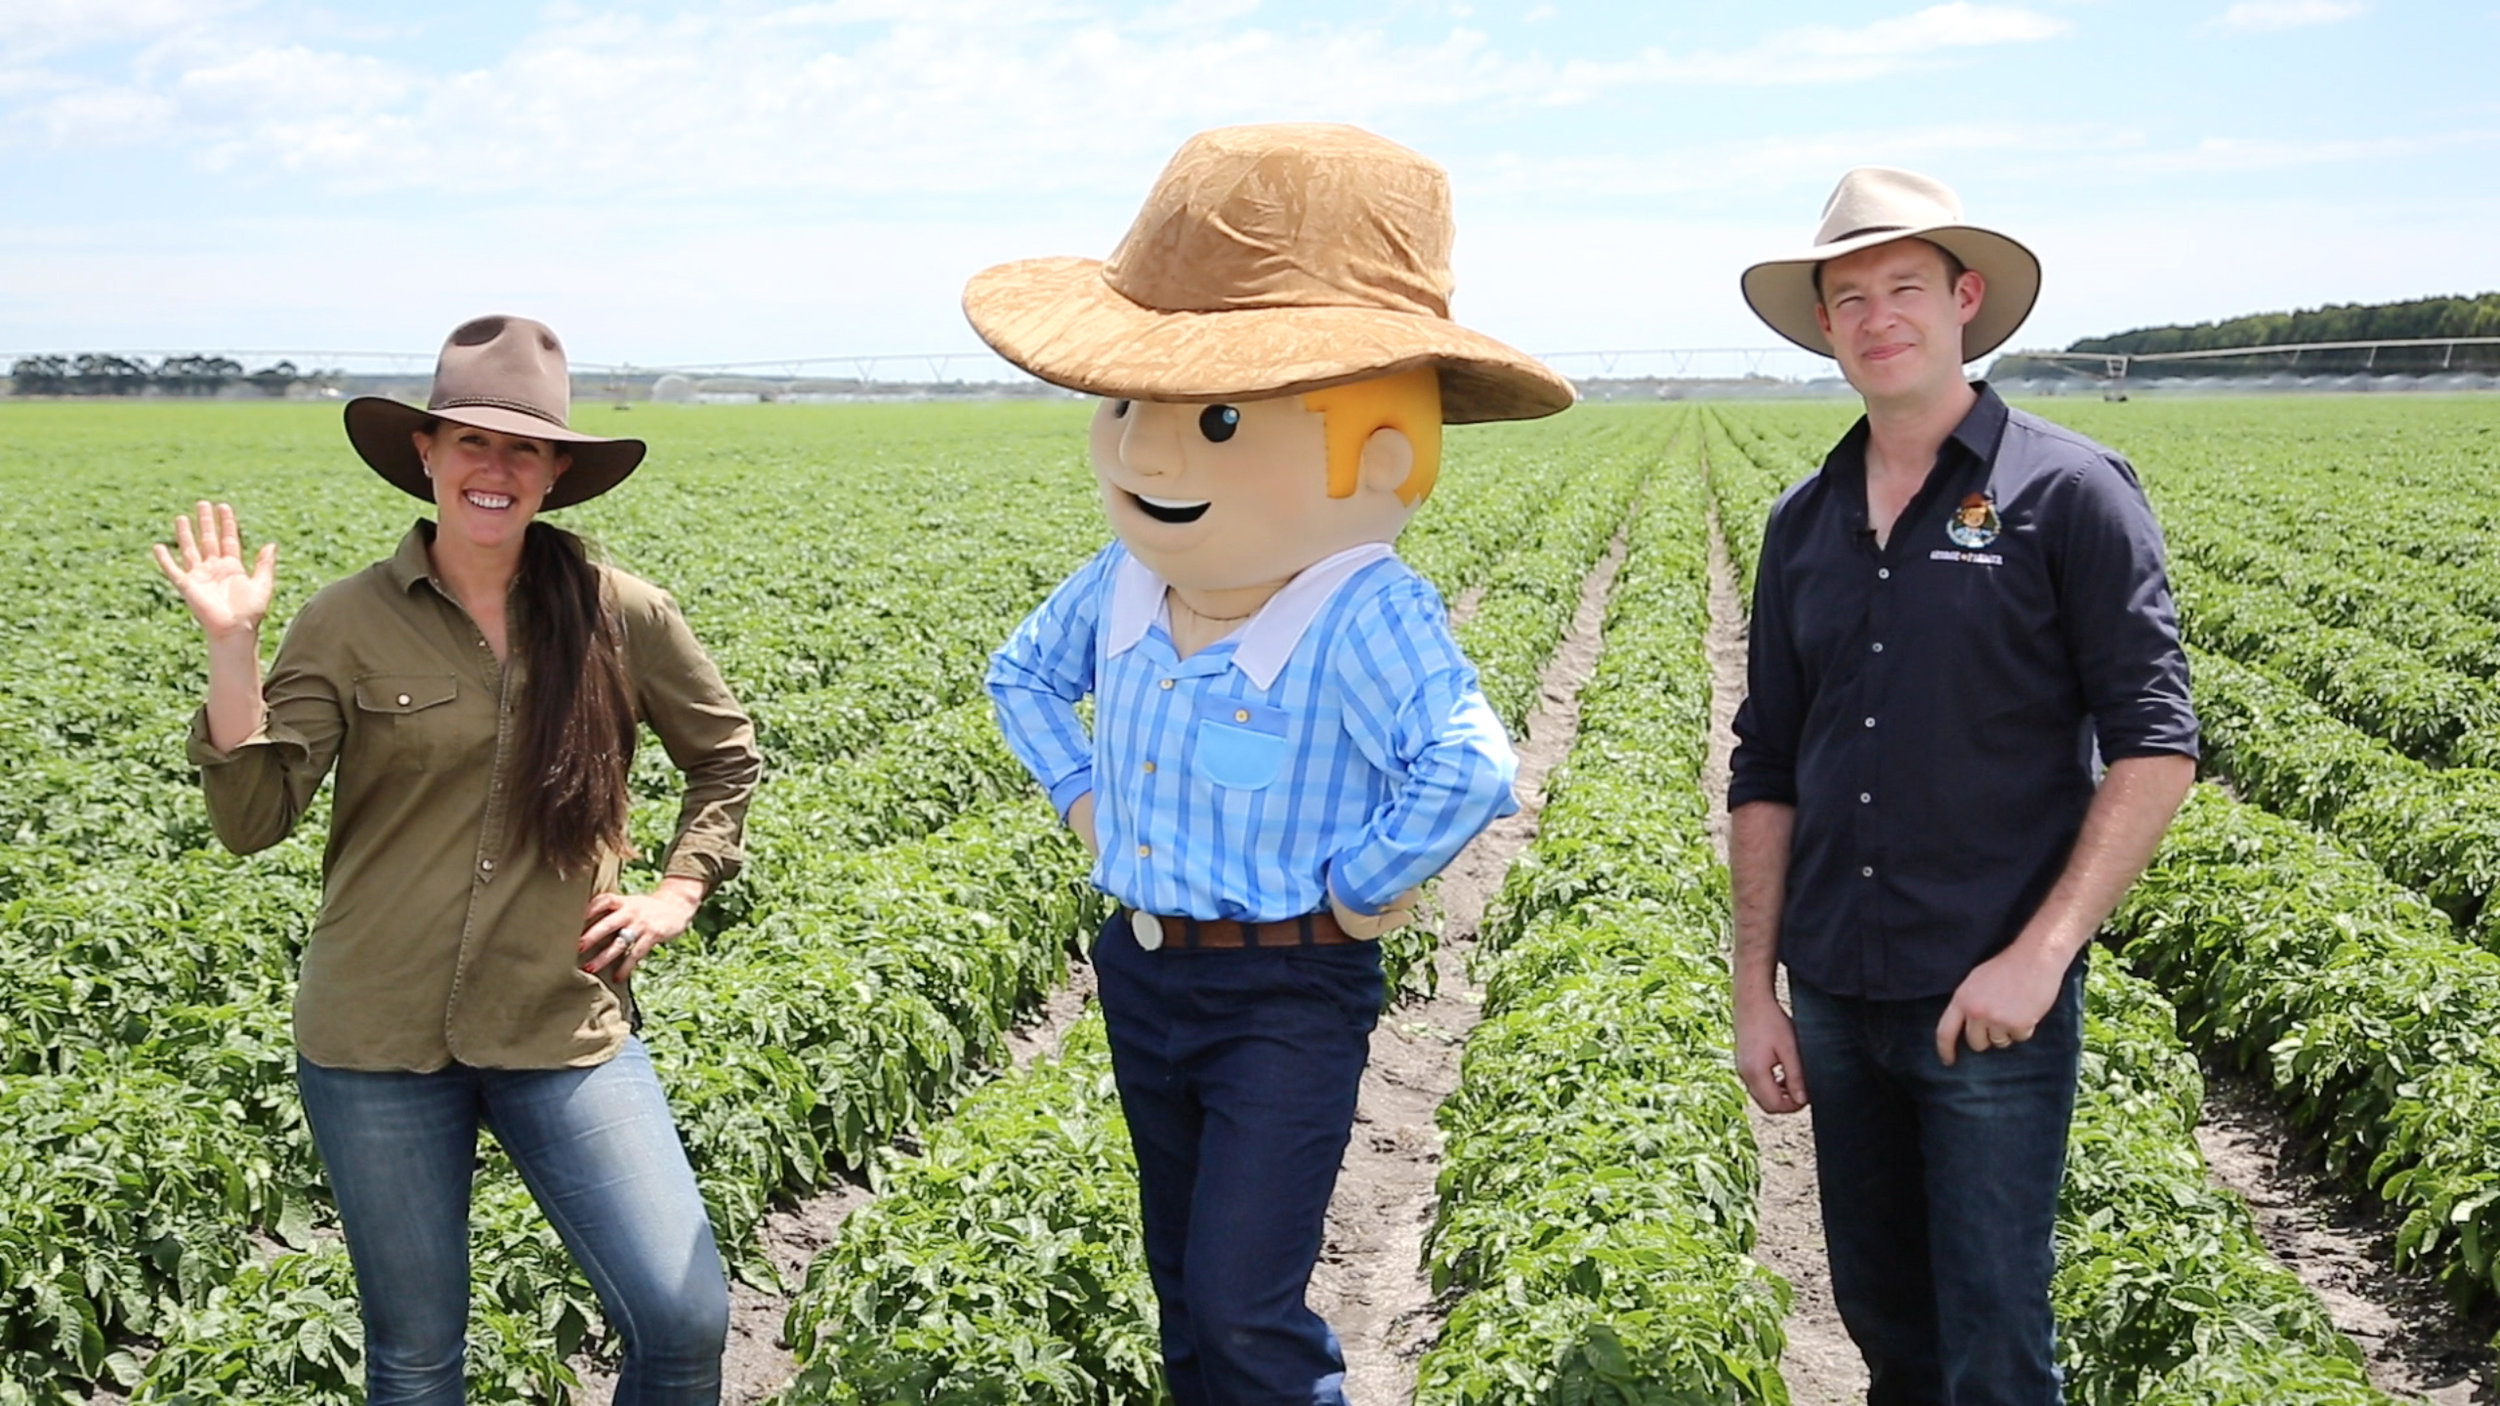 Simone and business partner Ben with George the Farmer.